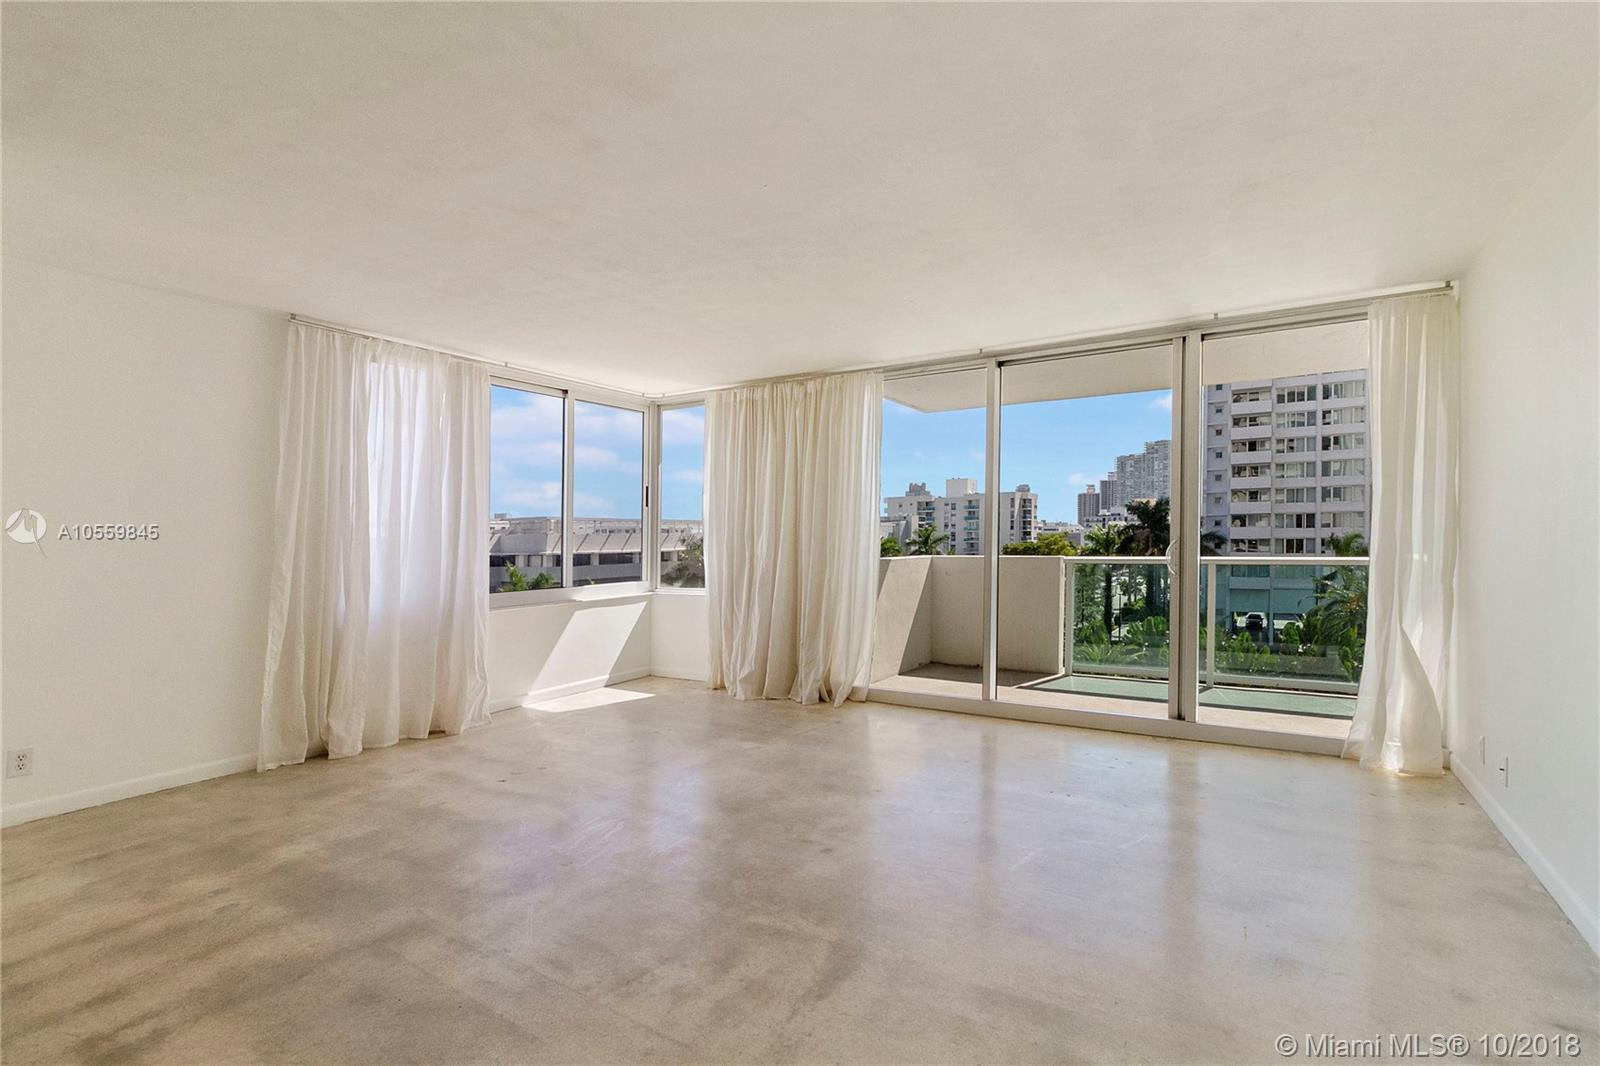 Over-sized 1 bedroom with 1.5 baths. Open balcony, great layout, excellent location. New impact windows and more.